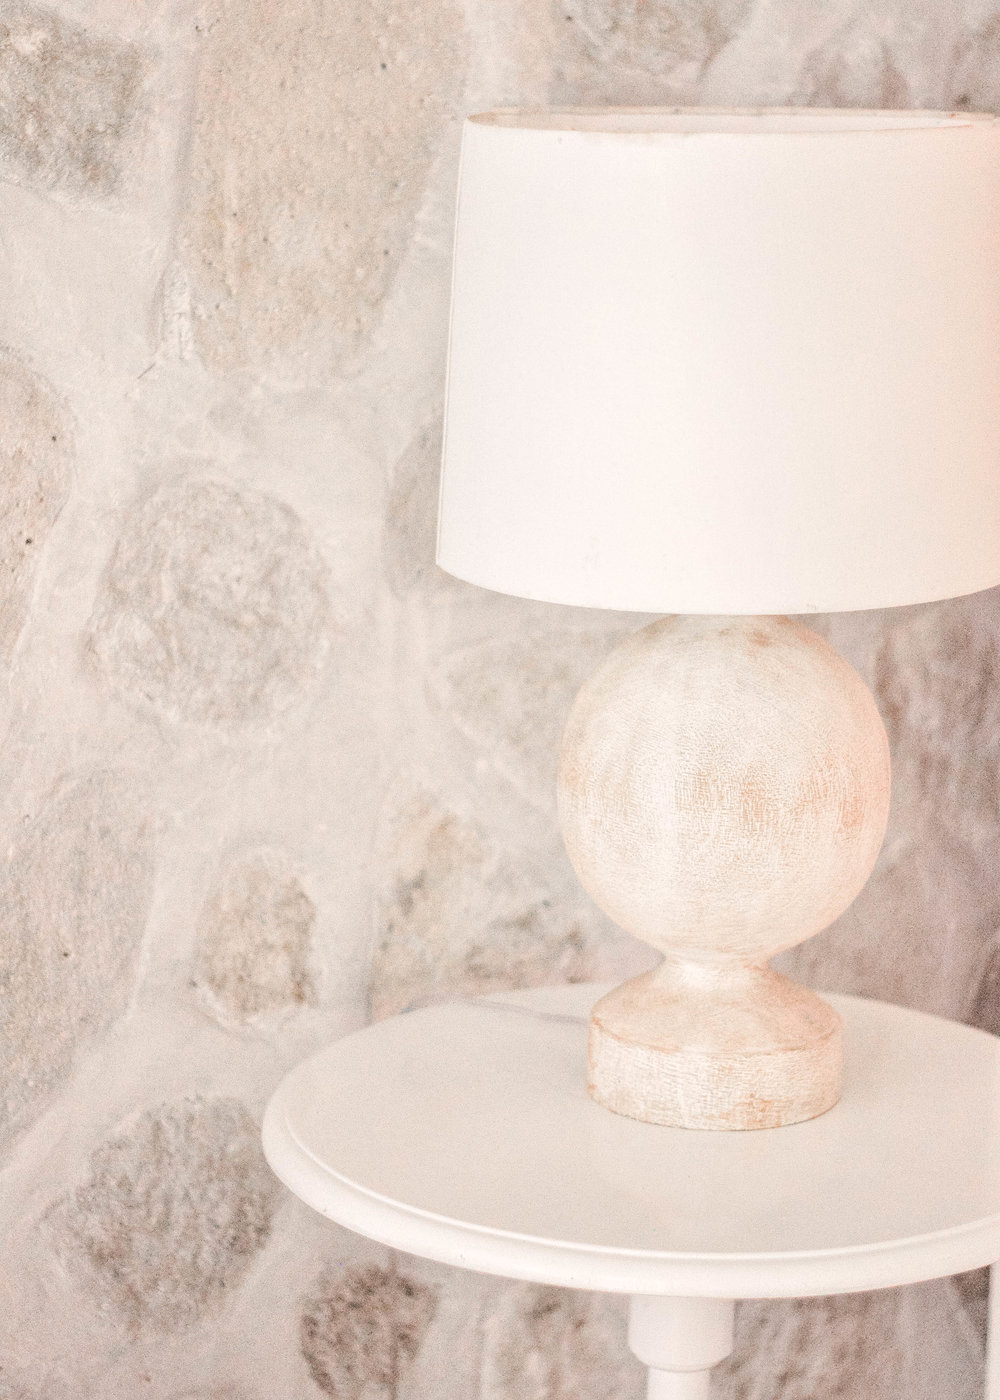 White lamp against stone wall